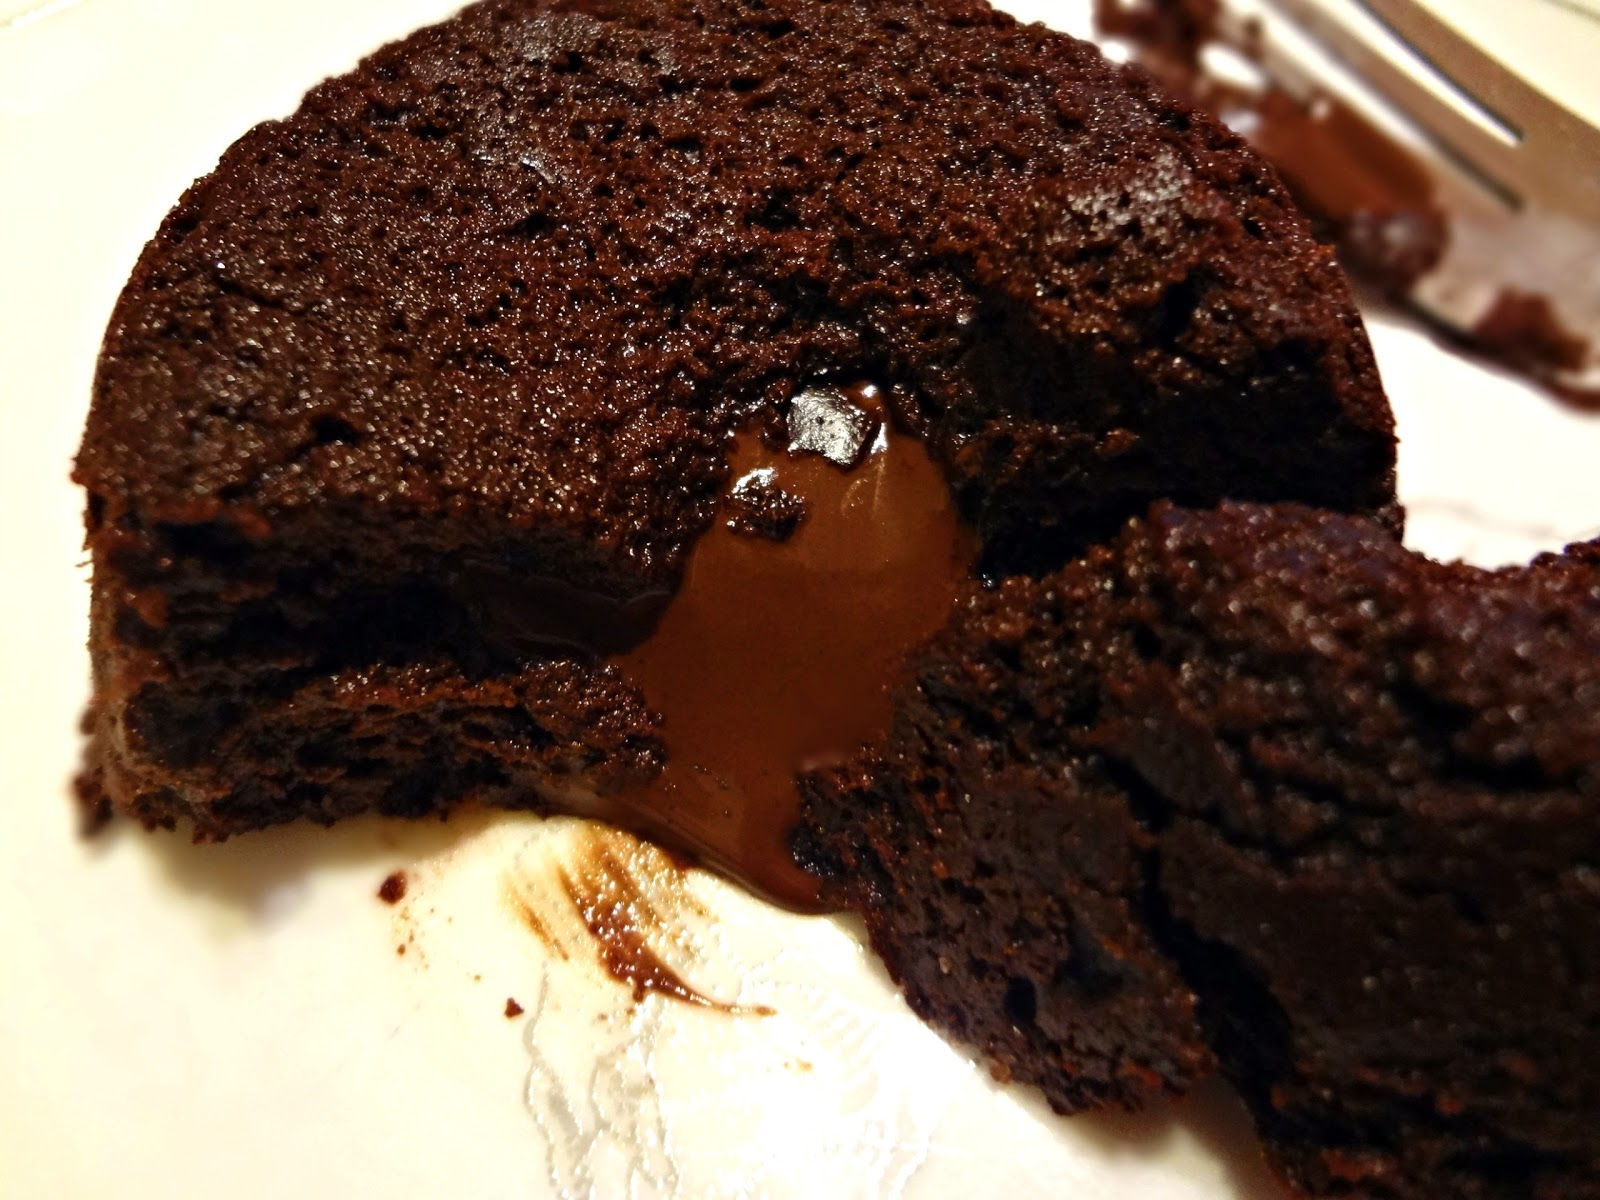 Original Chocolate Cake